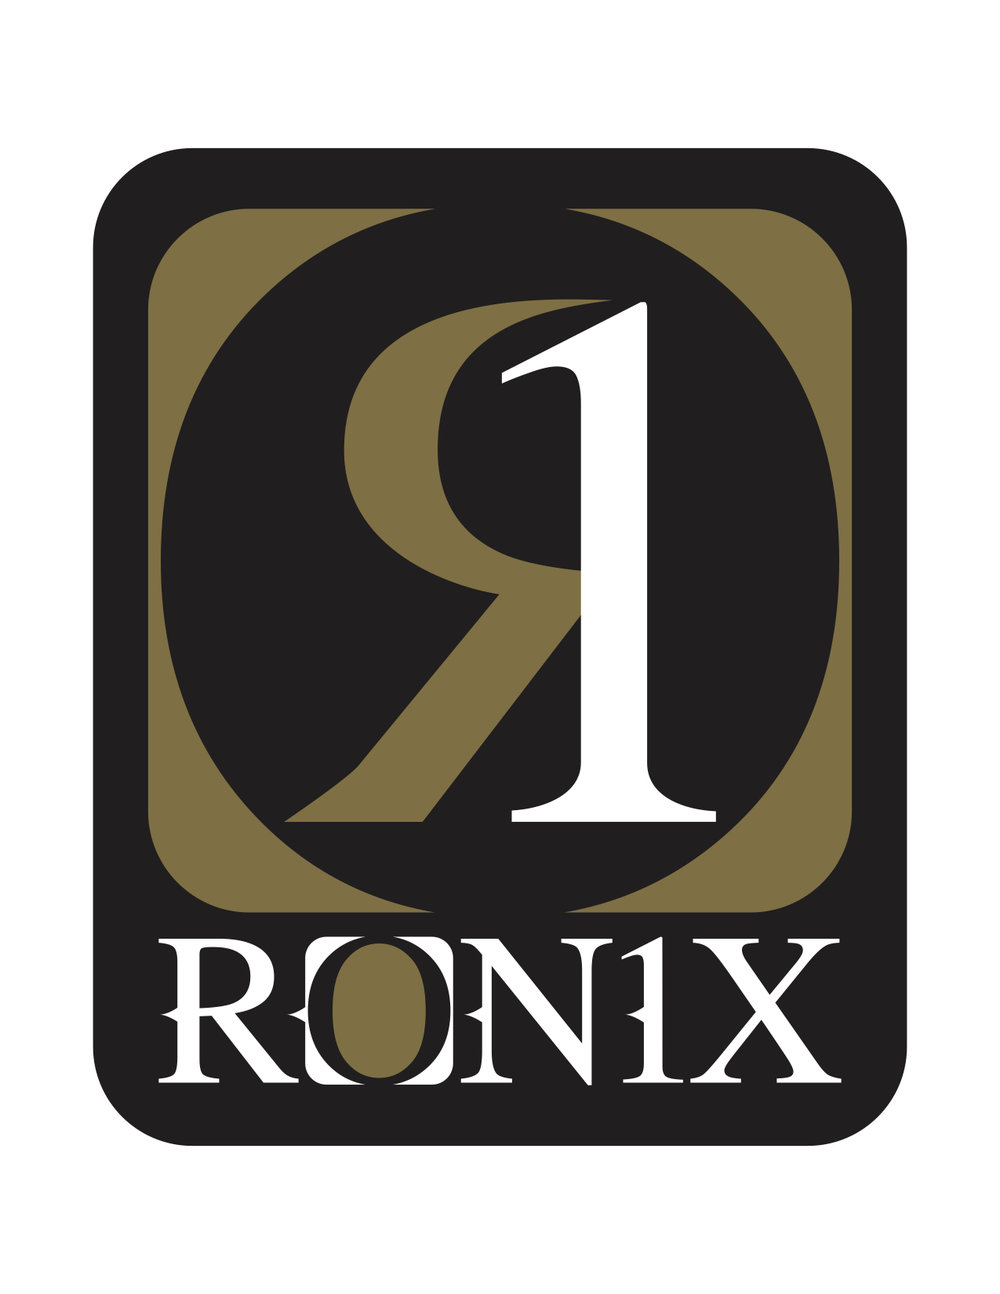 ronix_final_icon.jpg